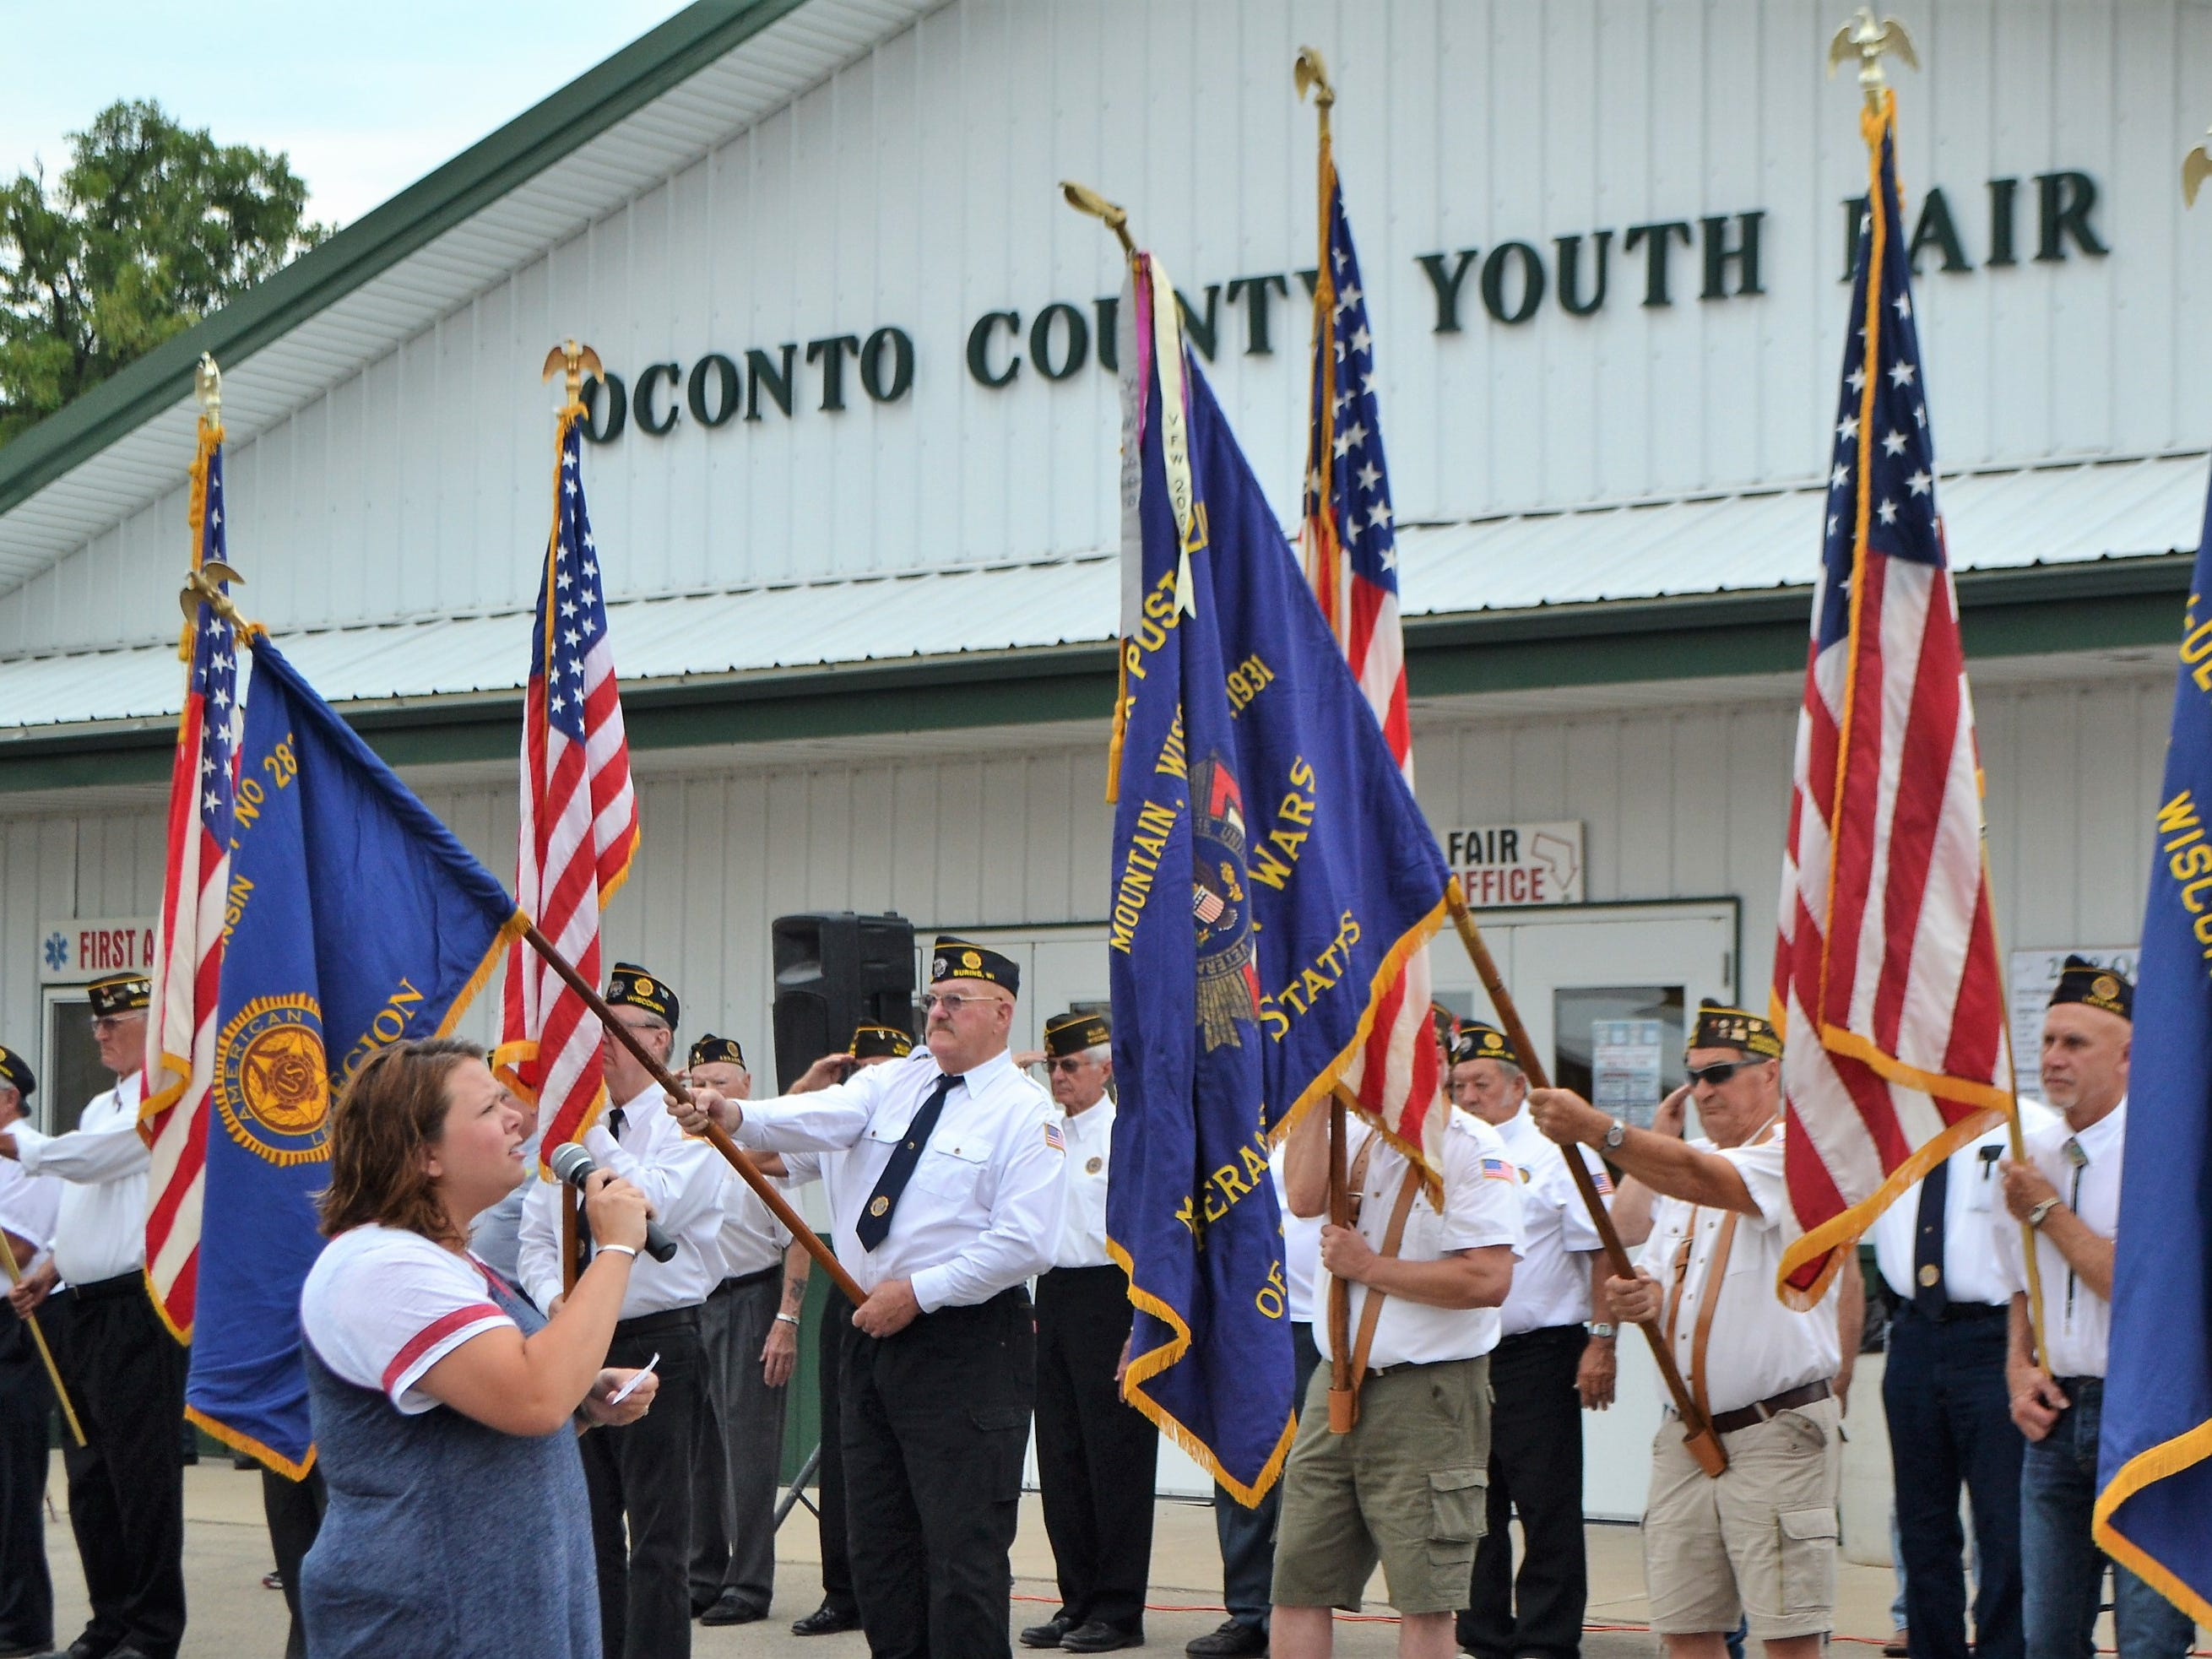 Kari Moody sang the National Anthem as a color guard of veterans from Oconto County hold flags at the opening ceremony of the Oconto County Fair on Thursday, Aug. 16.